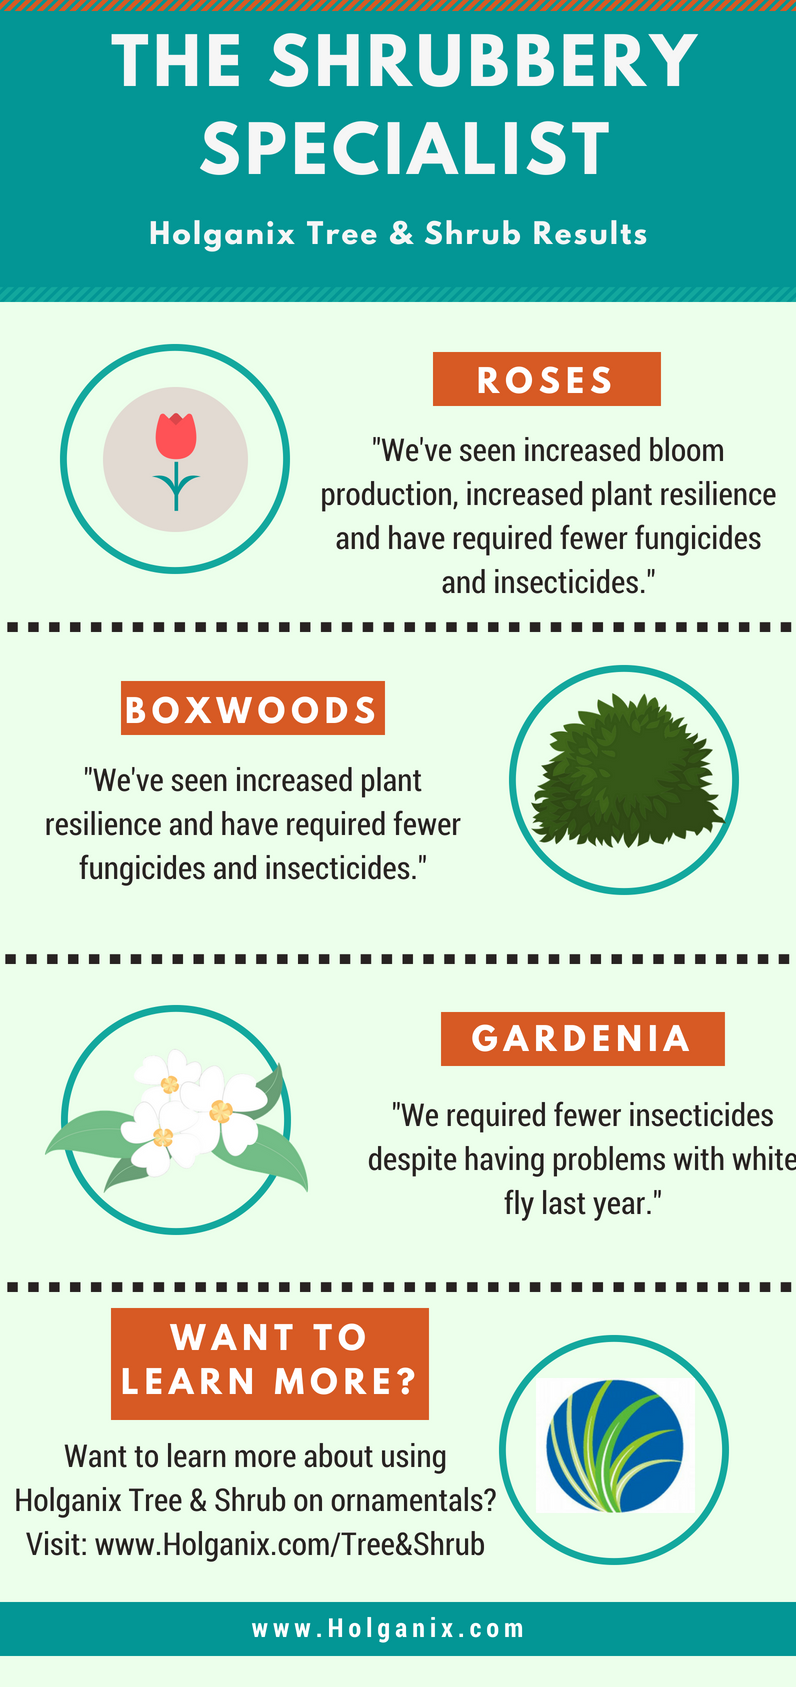 The Shrubbery Specialist Infographic